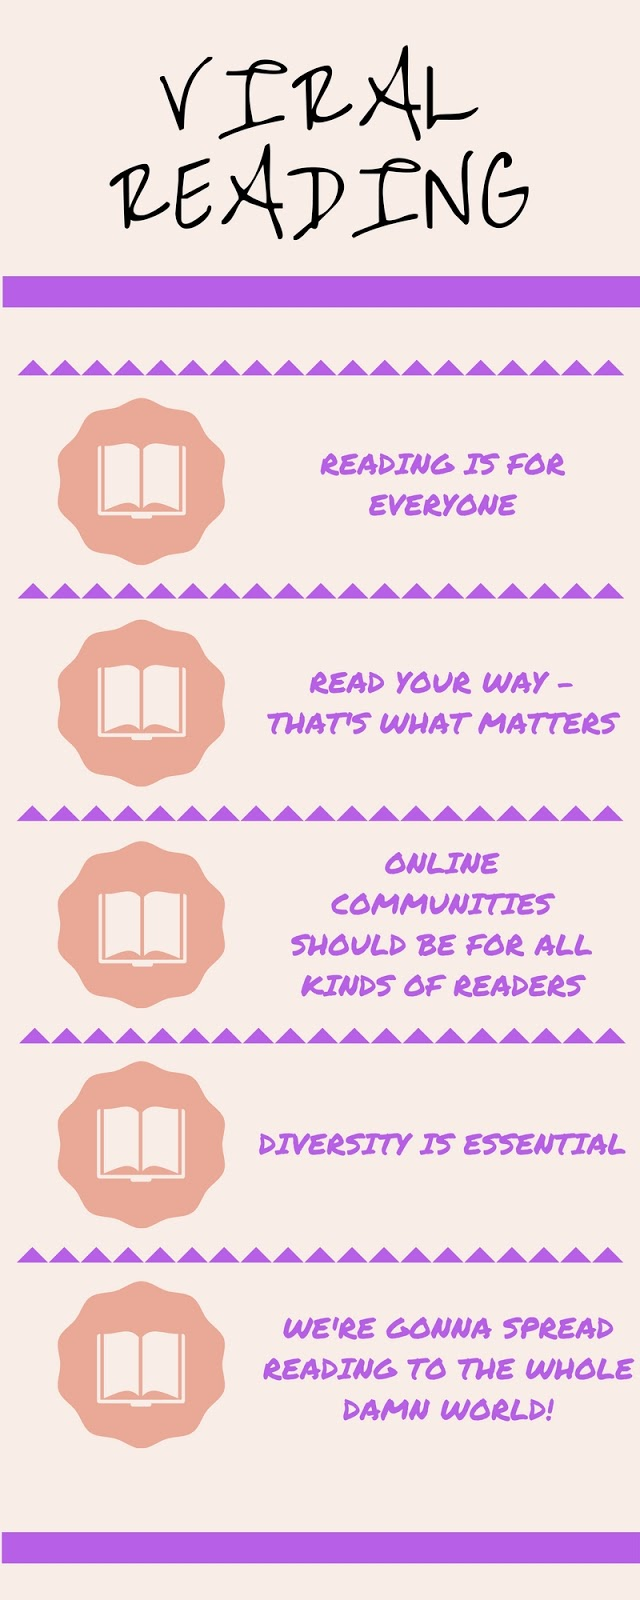 My 'To sum up' points as an infographic with books as bullet points